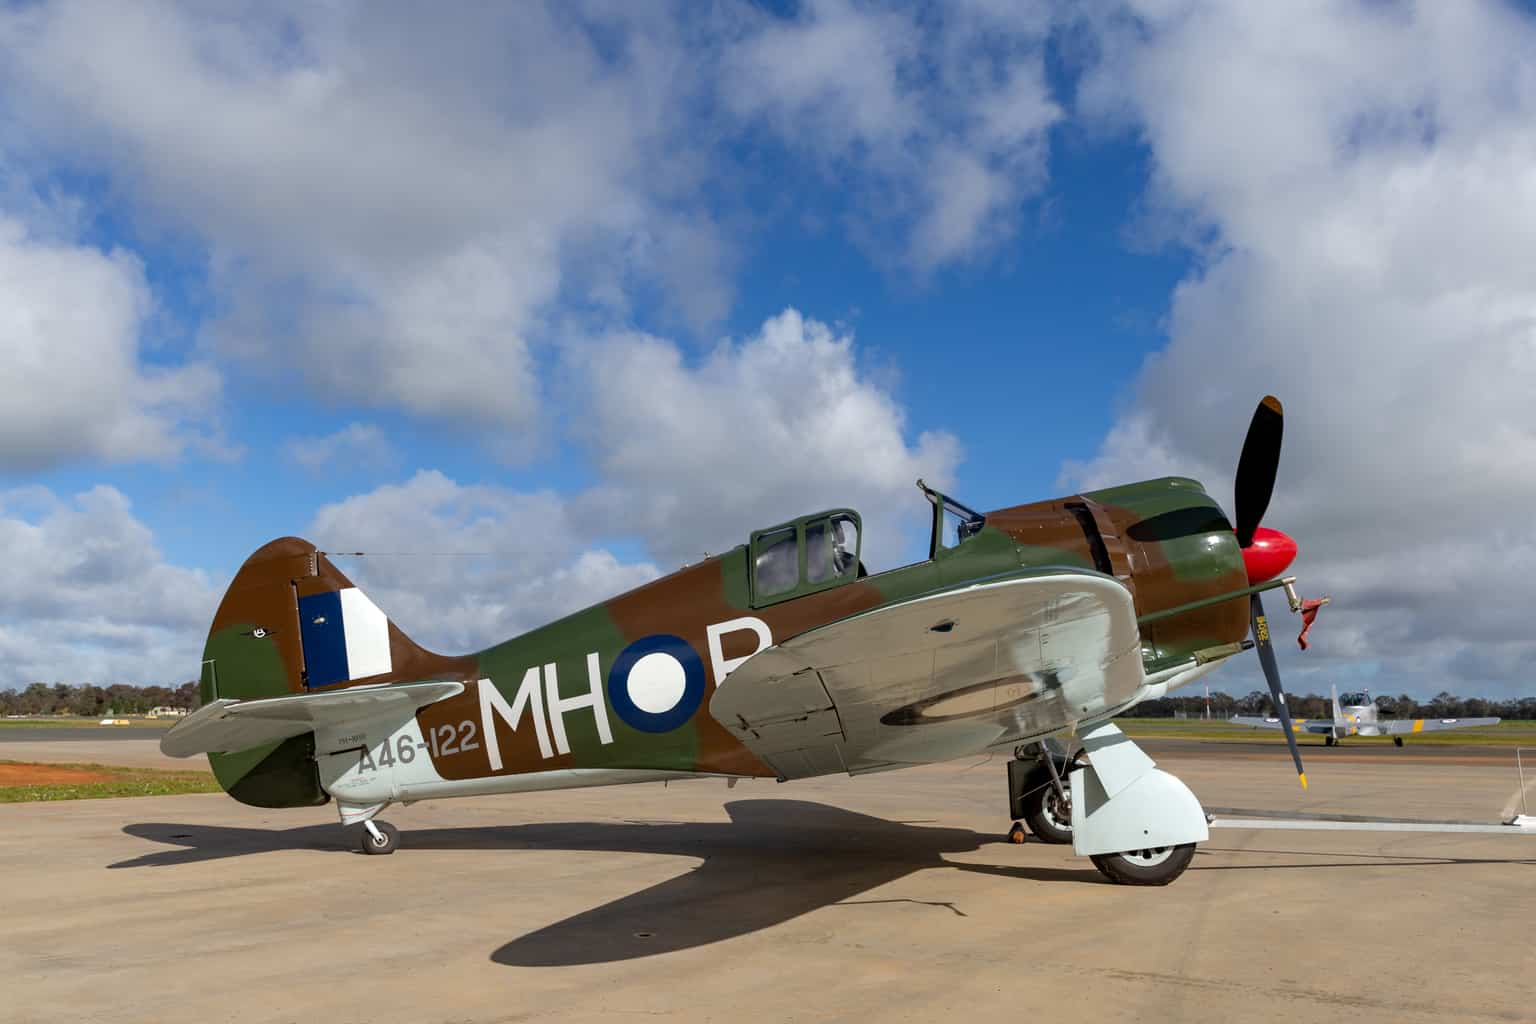 If you're travelling around Australia then these are some of the historic, CA-13 Boomerang fighter planes you'll see at the Temora Aviation Museum.